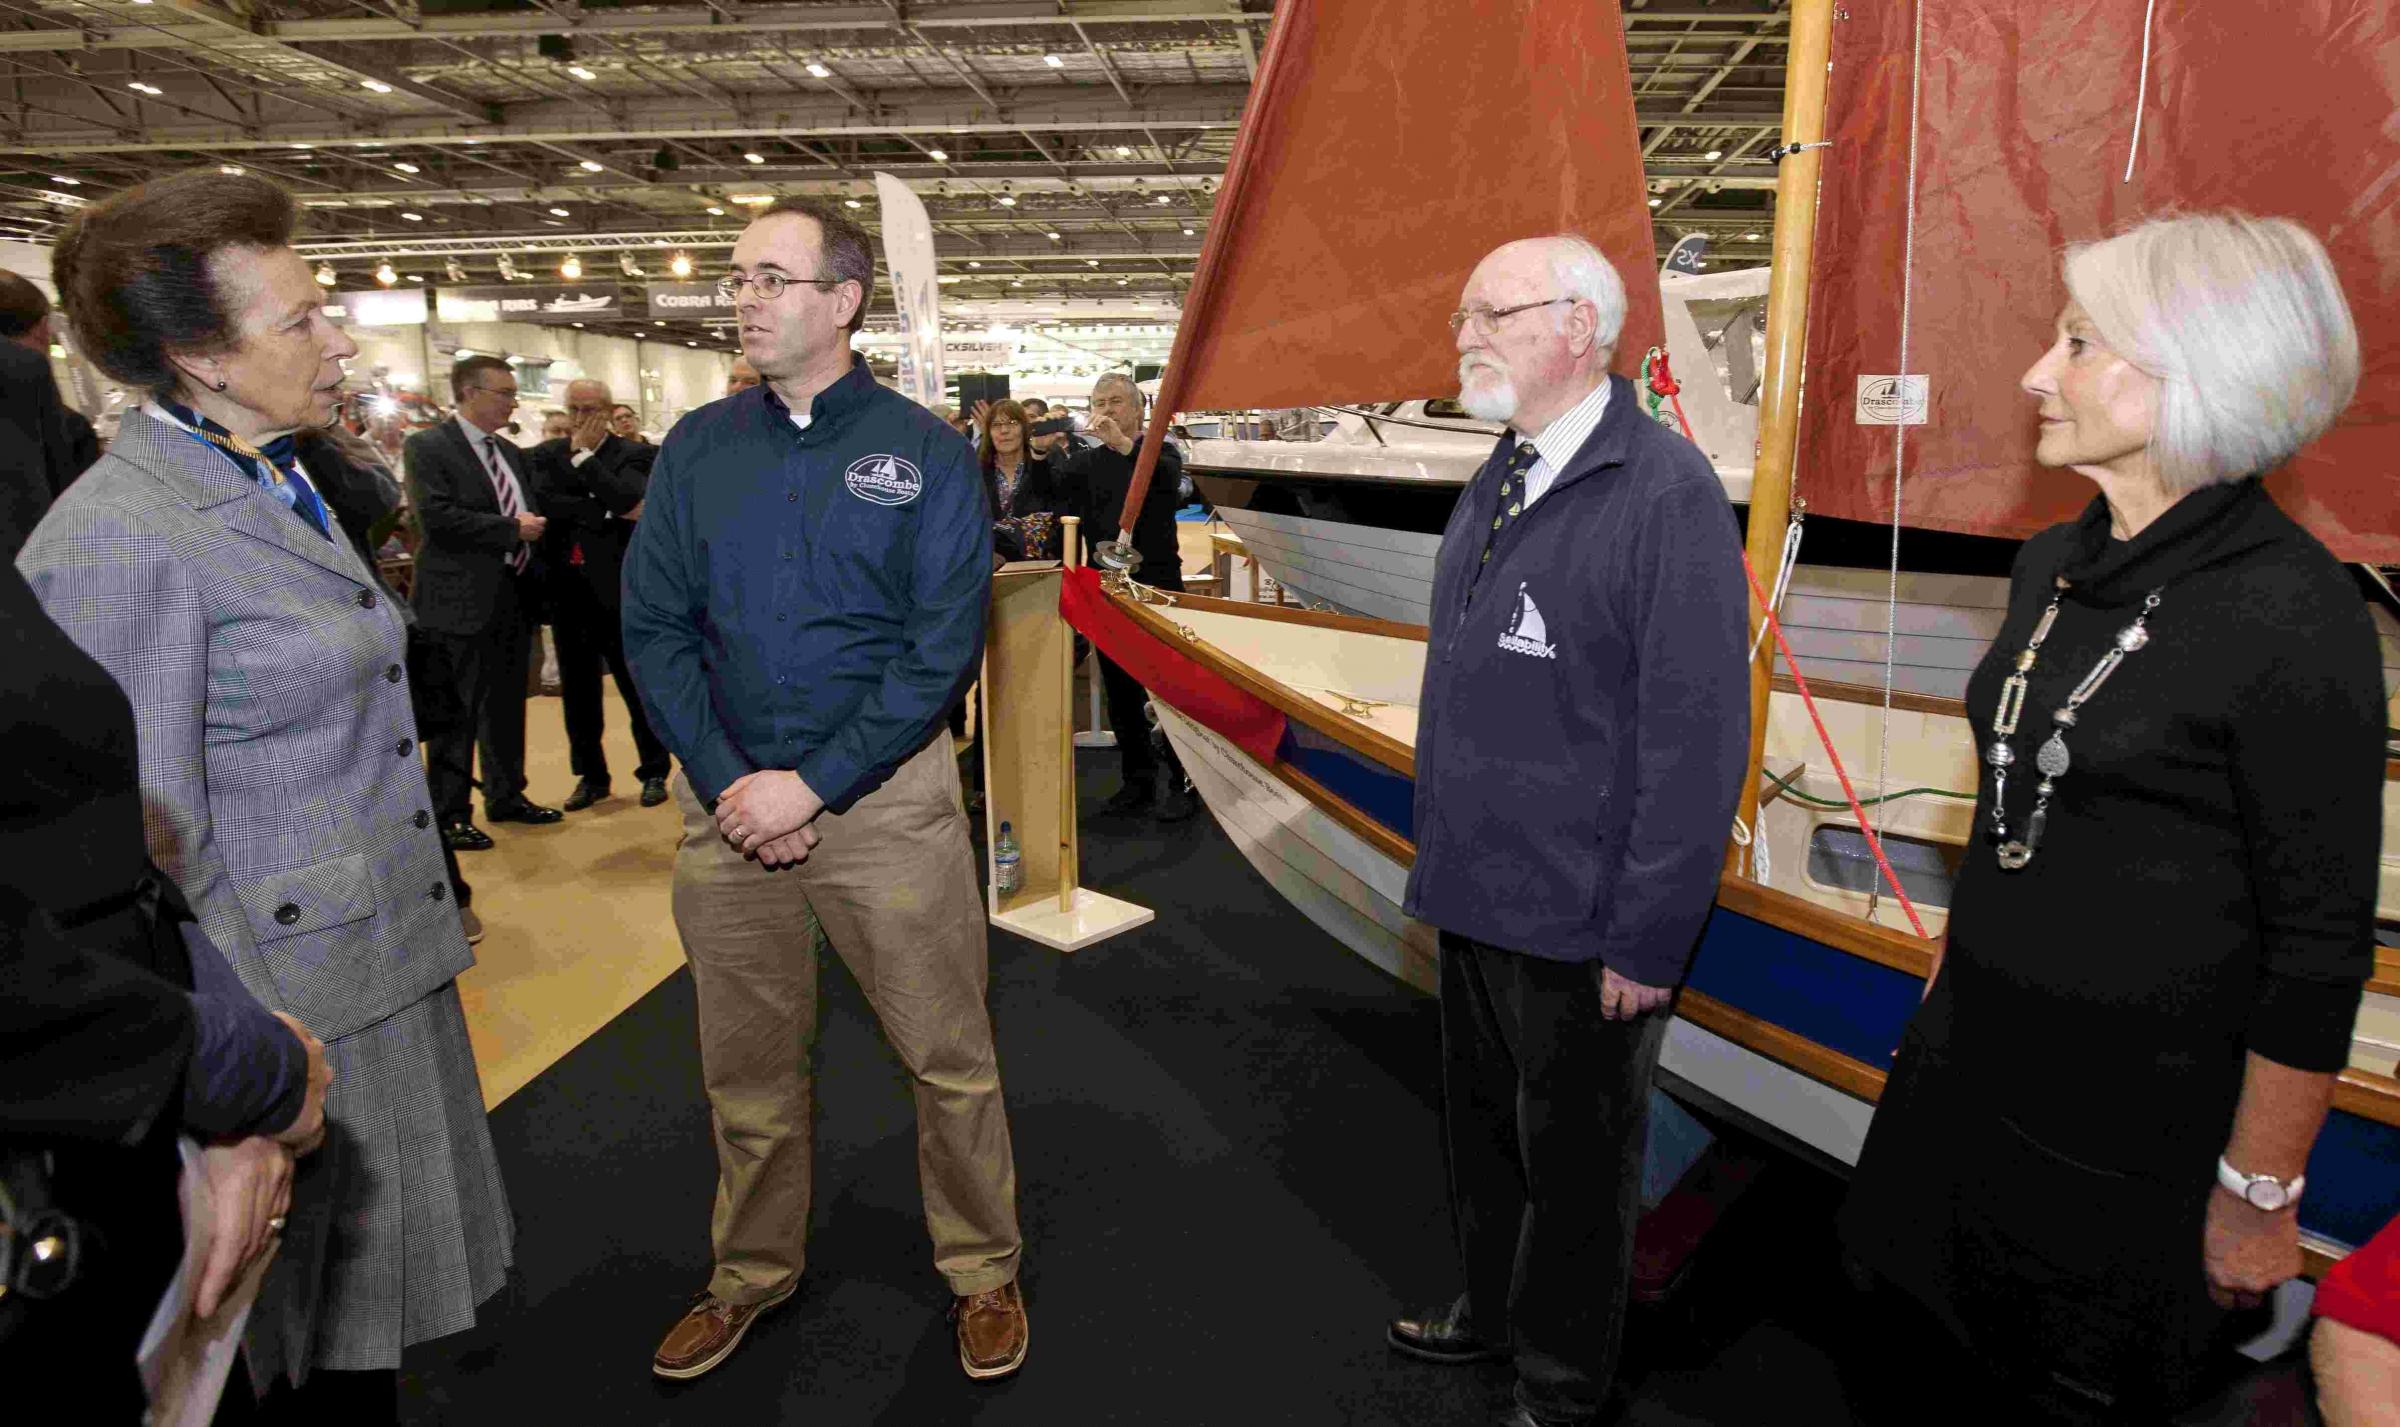 Princess Anne gives a Churchouse sailing boat her seal of approval